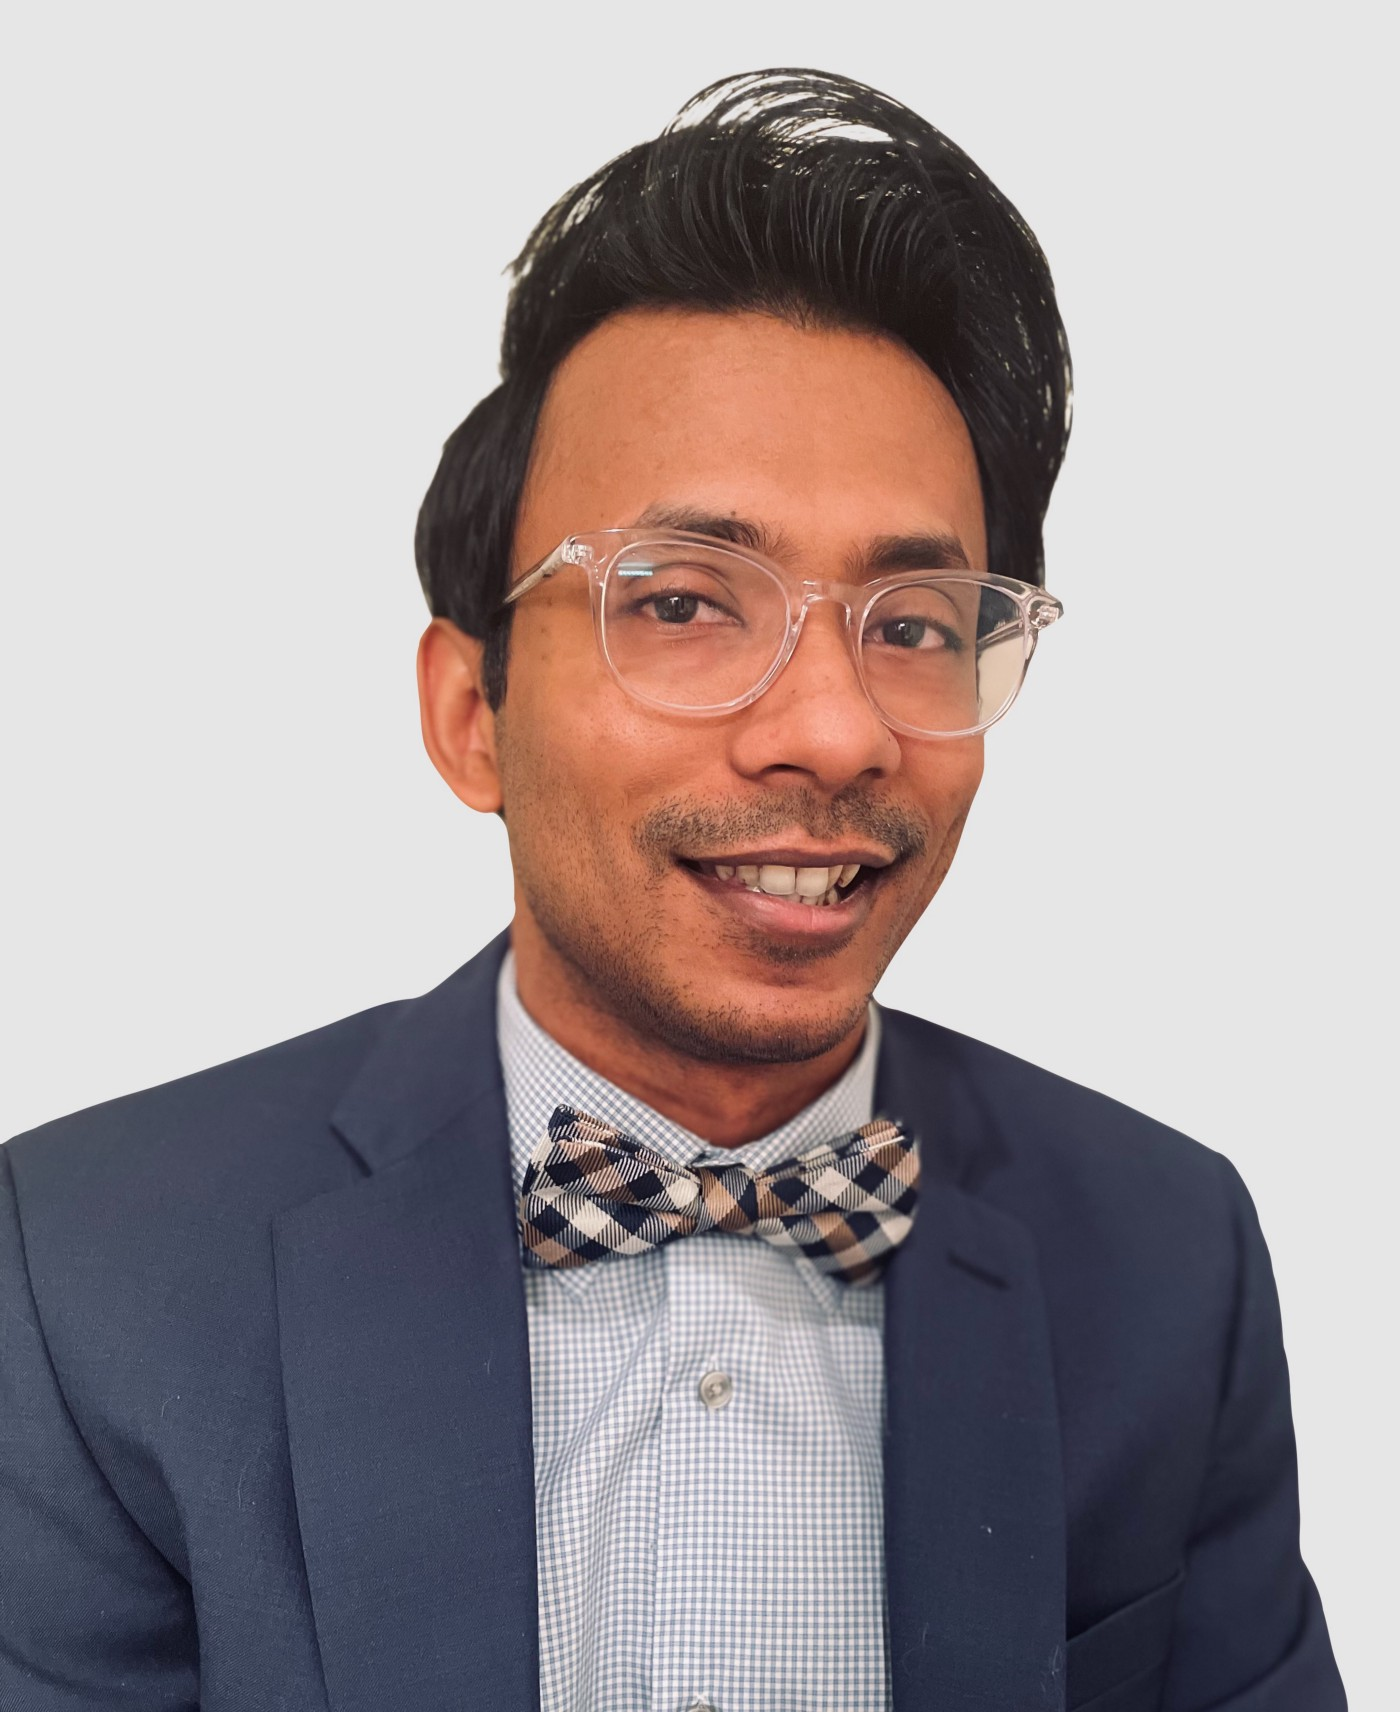 Headshot of Ather, who is Asian, smiling, wearing a navy suit and checkered bowtie. He is wearing thick clear-framed glasses.